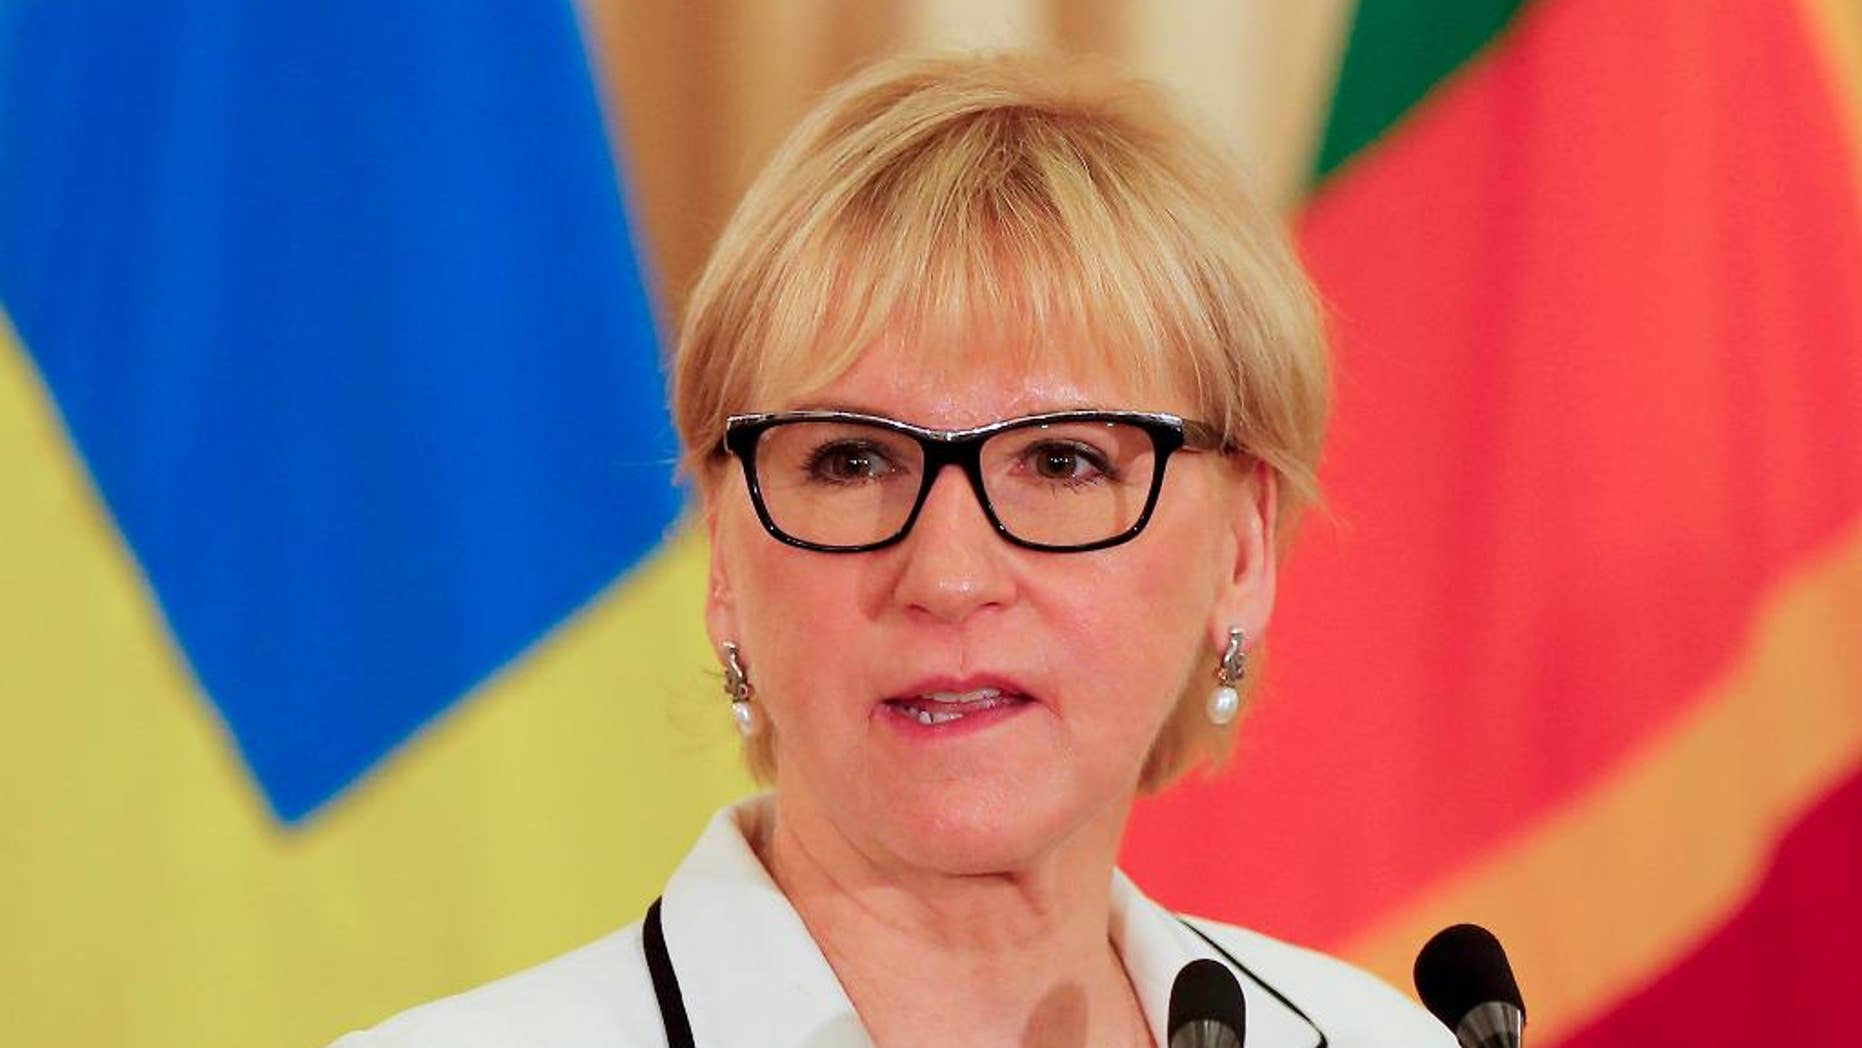 """File -- In this April 25, 2016 file photo, Swedish foreign minister Margot Wallstrom speaks after her meeting with Sri Lankan counterpart Mangala Samaraweera in Colombo, Sri Lanka. In an apparent diplomatic snub, Israel says none of its officials will meet with Wallstrom who arrives for a visit Thursday, Dec. 15, 2016. Israeli Foreign Ministry spokesman cited a """"scheduling issue"""" for the decision not to meet with Wallstrom. It is highly unusual for a visiting high-level dignitary not to meet any Israeli officials. (AP Photo/Eranga Jayawardena, File)"""